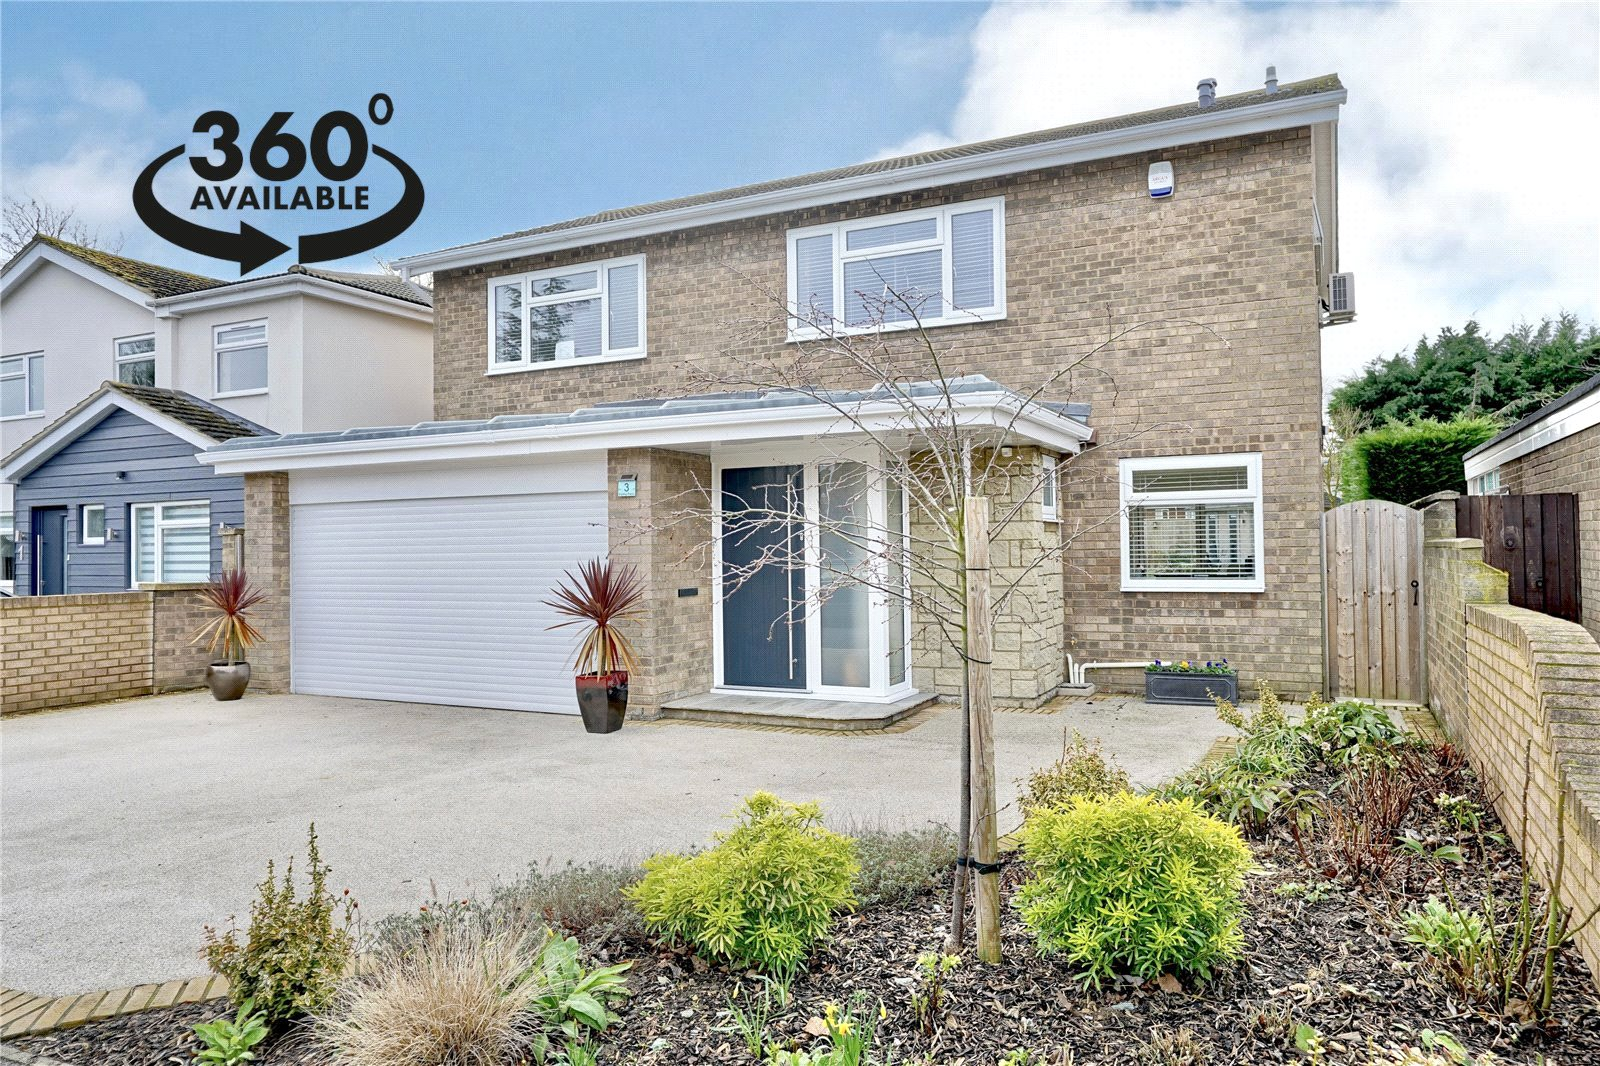 4 bed house for sale in Eaton Ford, PE19 7RG, PE19